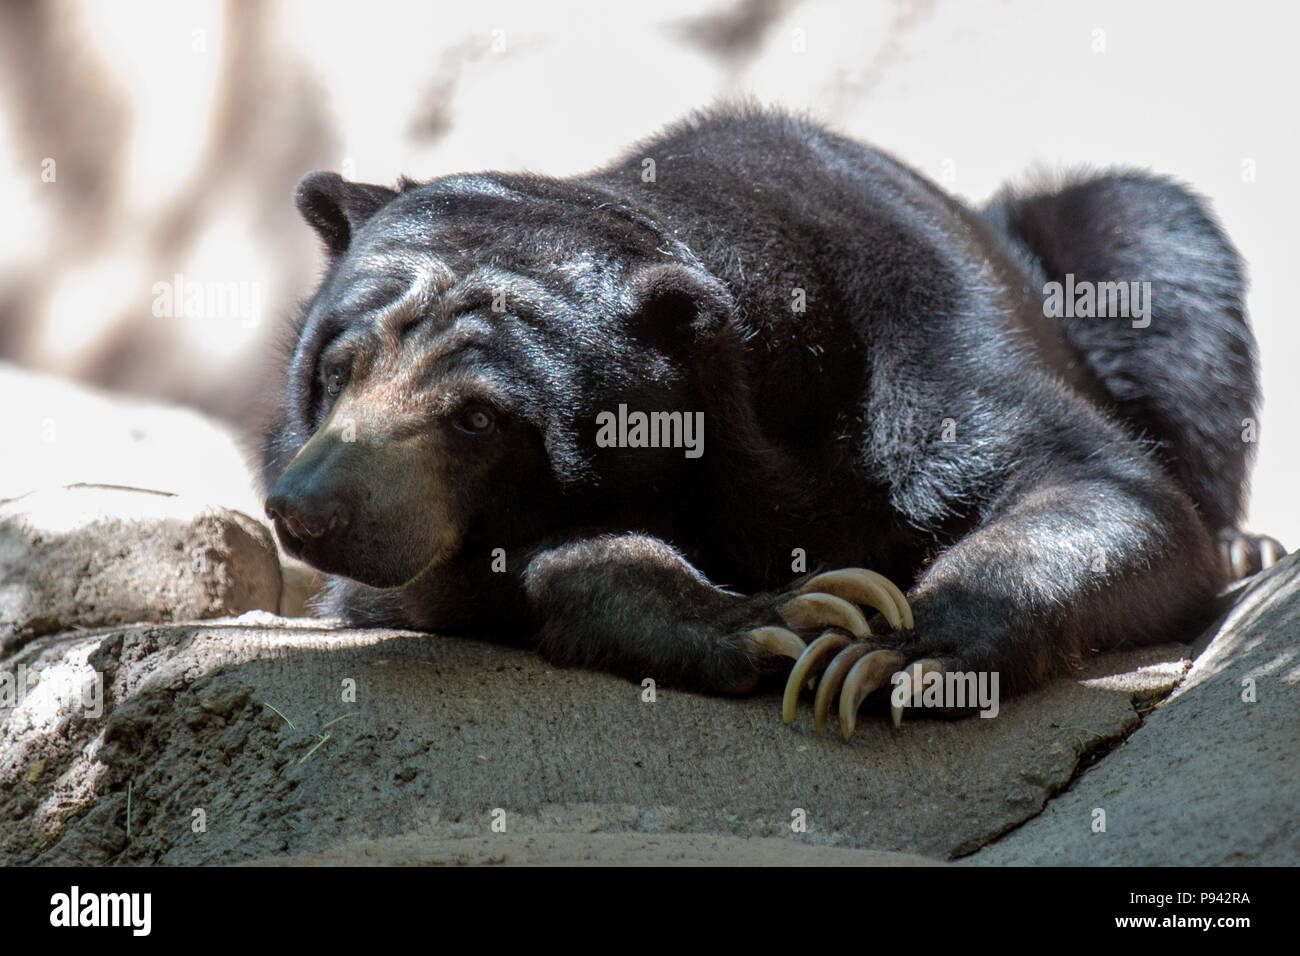 Black Burman bear resting in shade on a sunny day - Stock Image